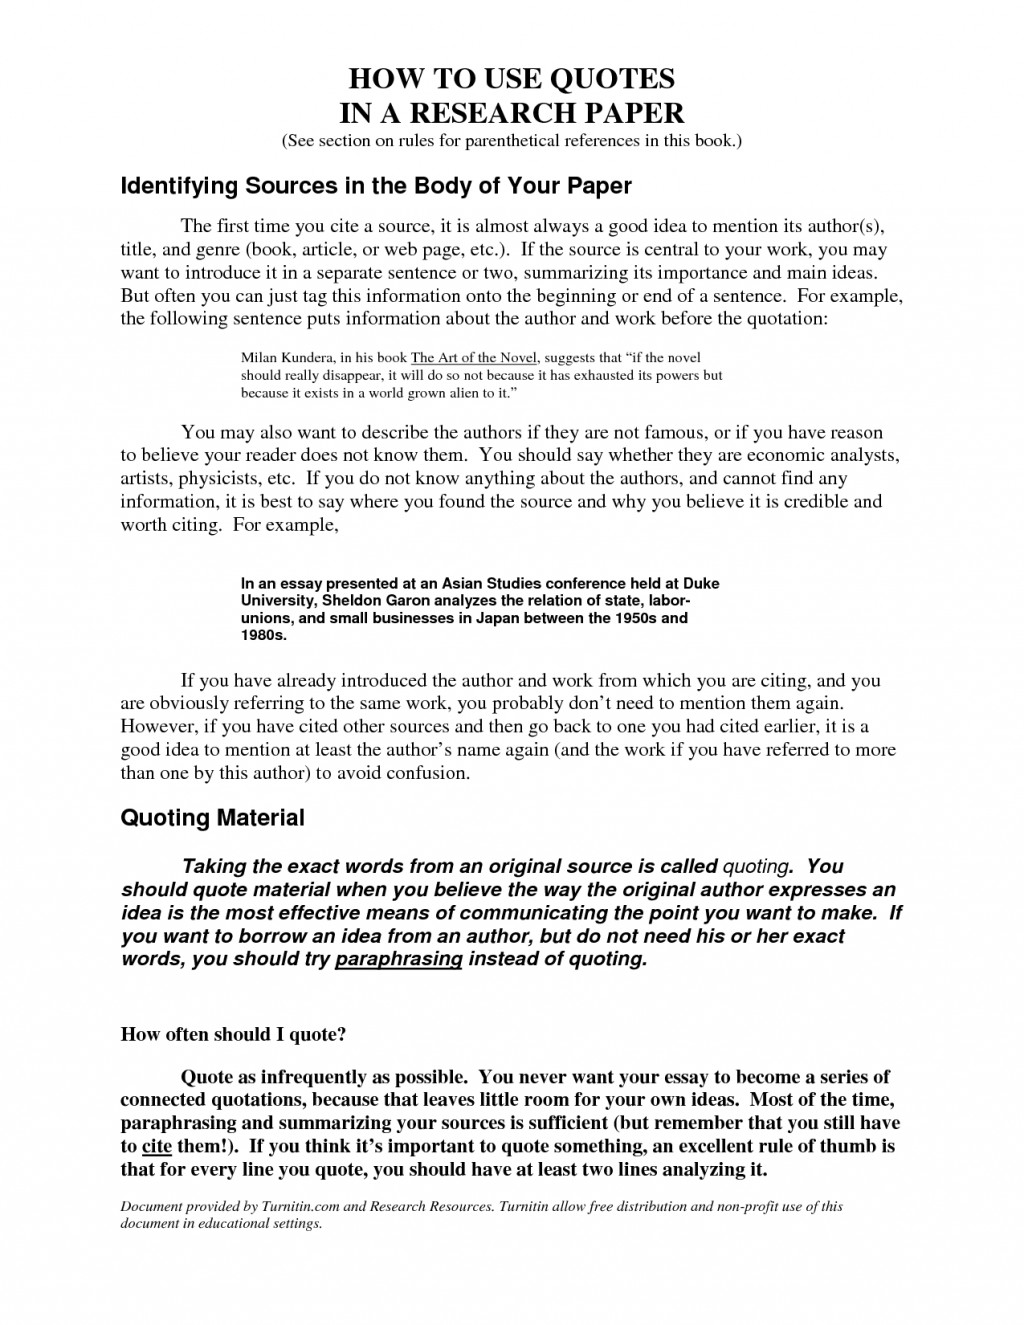 001 Essay Example Best Solutions Of Writing Quotes In Essays Marvelous Embedding On Quotestopics How To Unusual Use Integrate Quotations University Essays-apa Or Mla Large